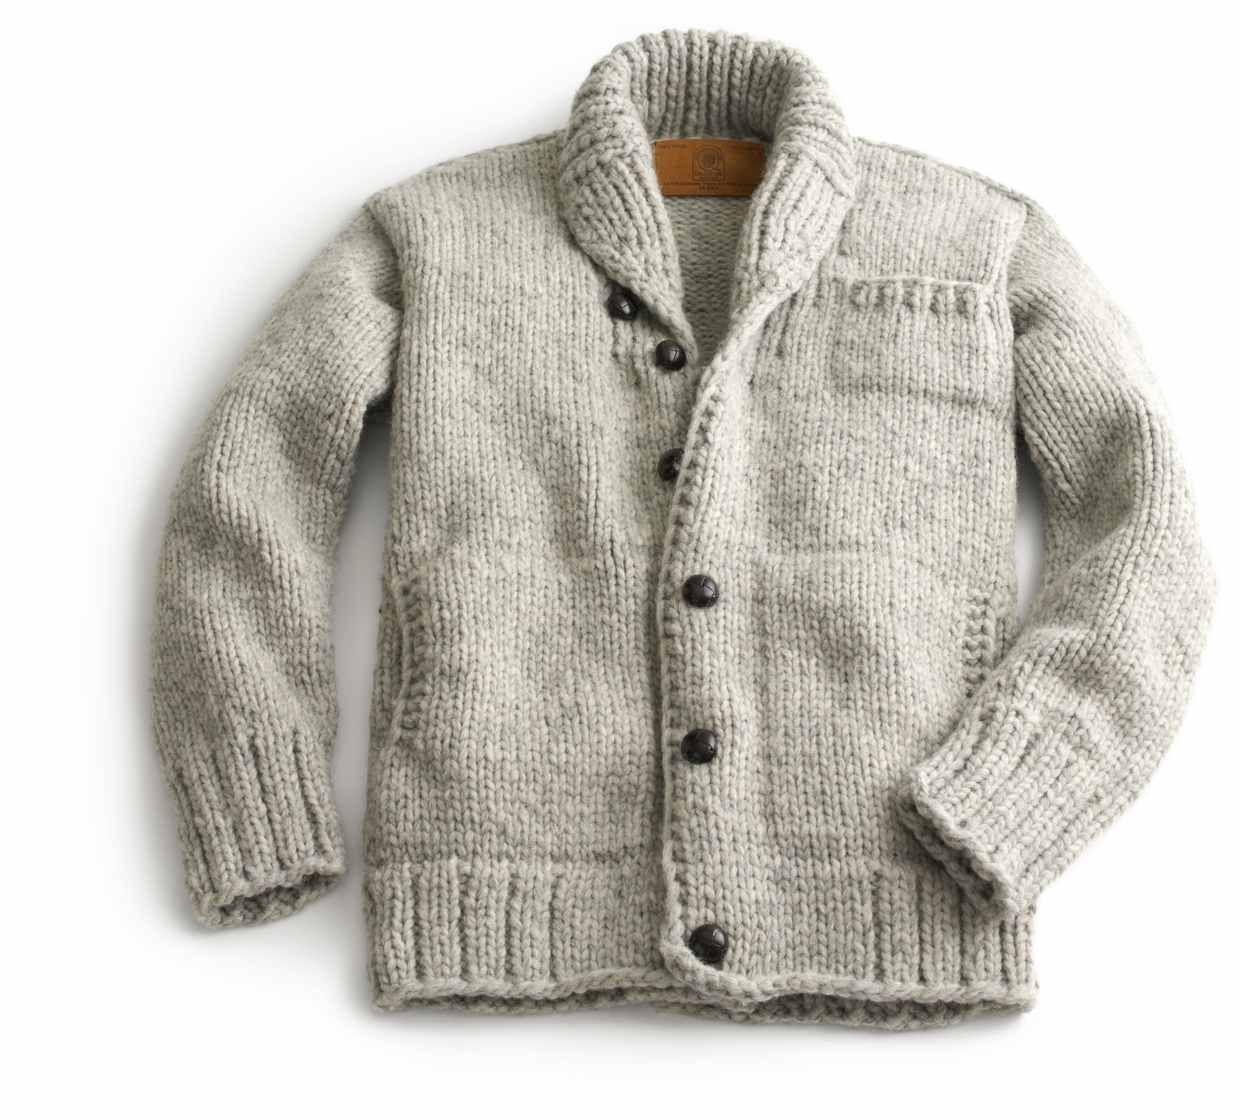 Canadian Sweater Company Cowichan Sweater Made In